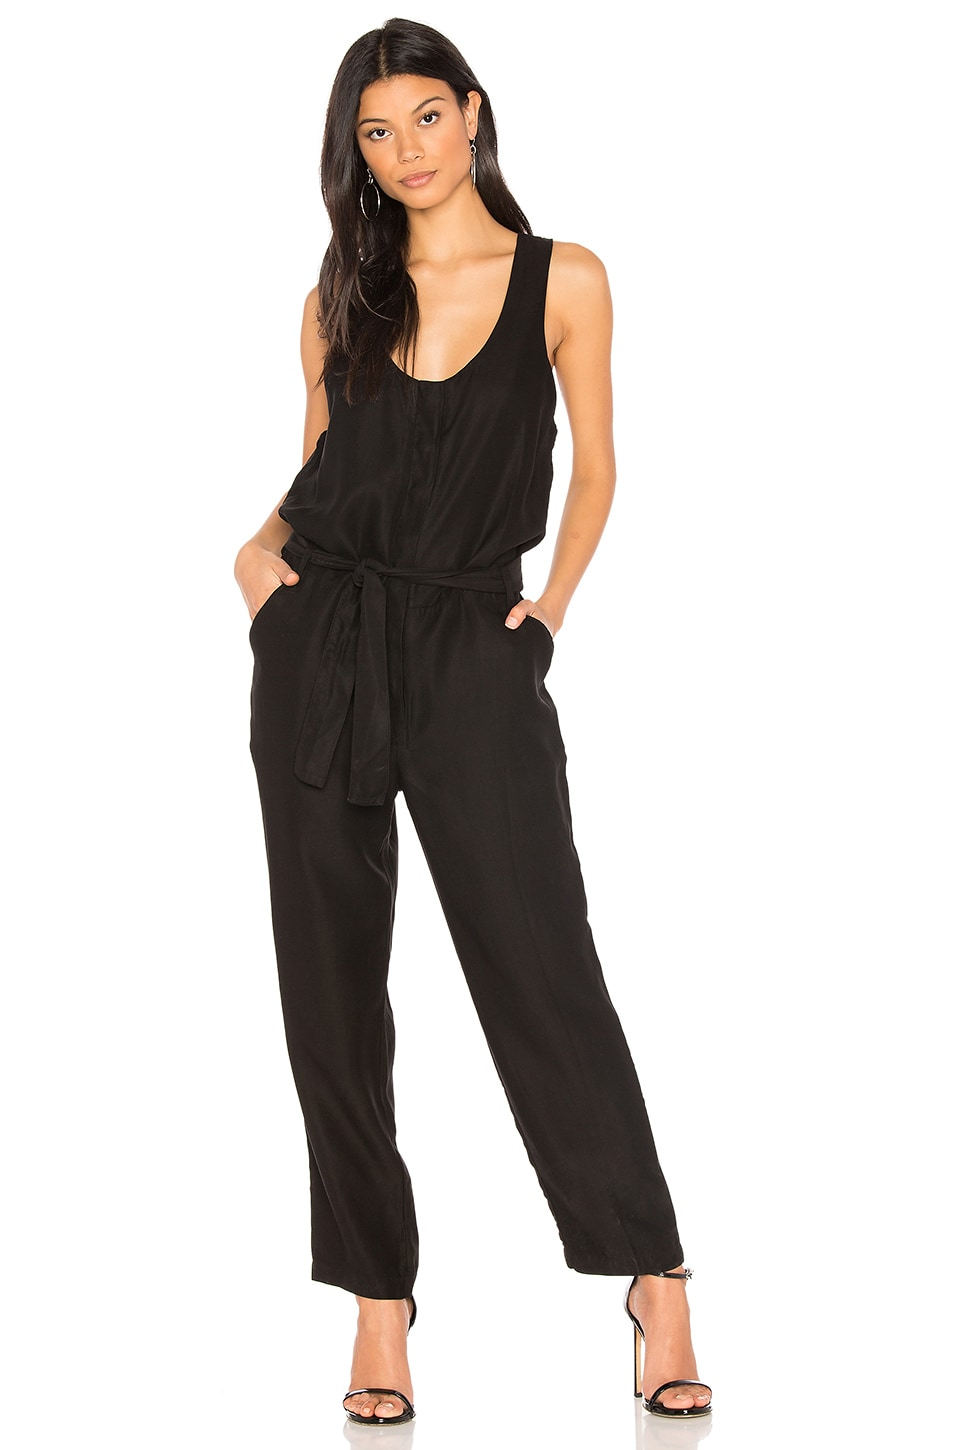 YORK street Utility Jumpsuit in Black